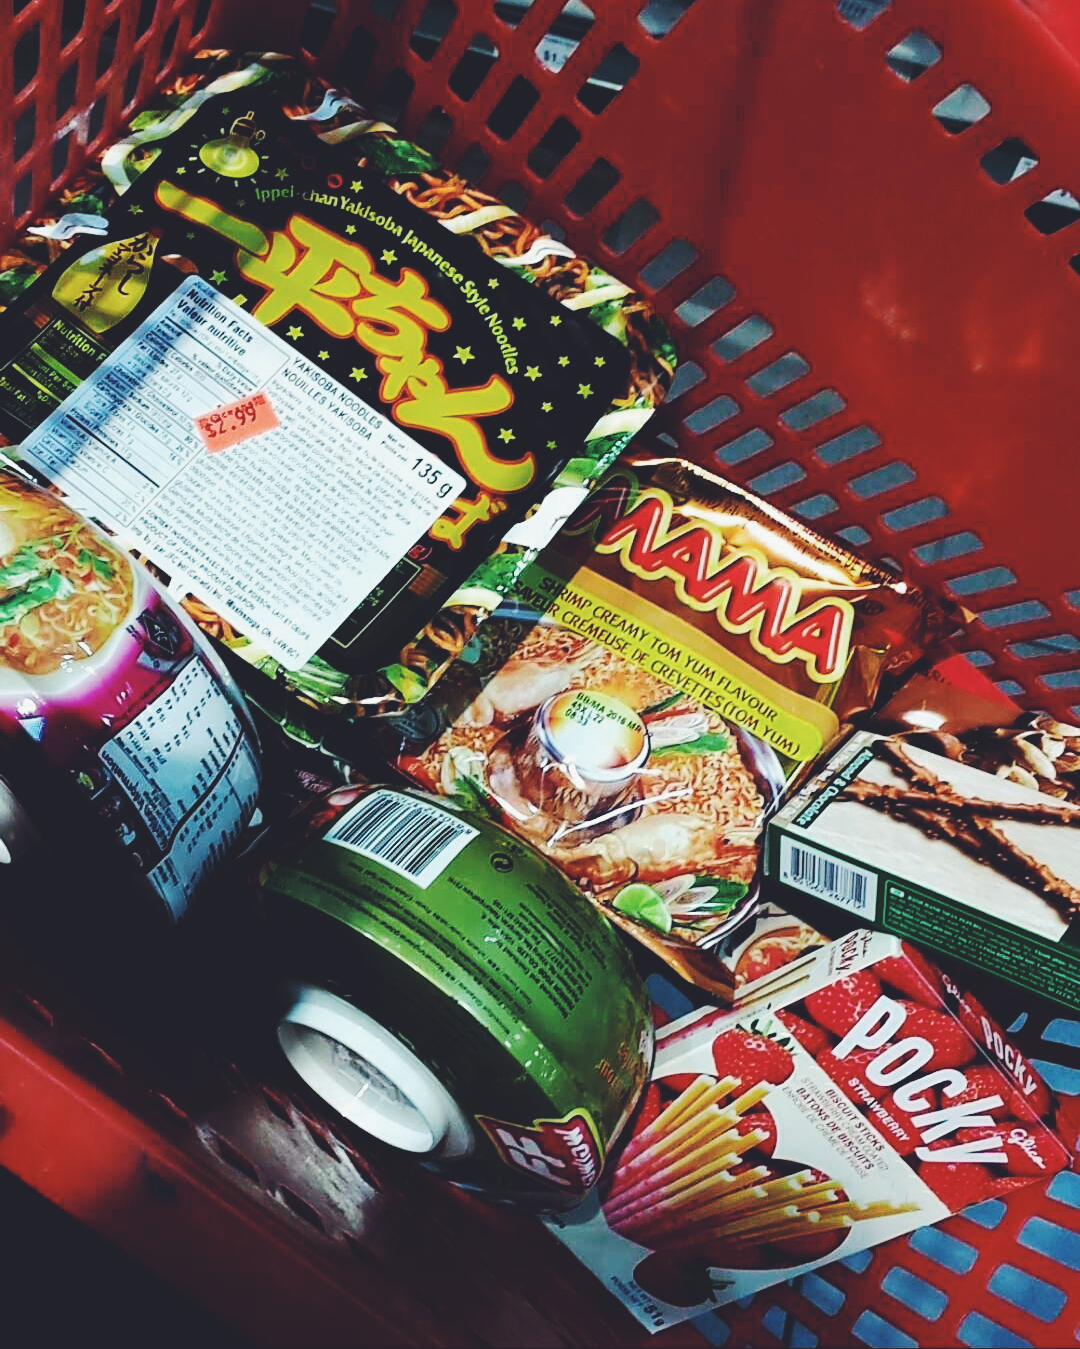 Grocery basket full of instant noodle packages and various snacks.